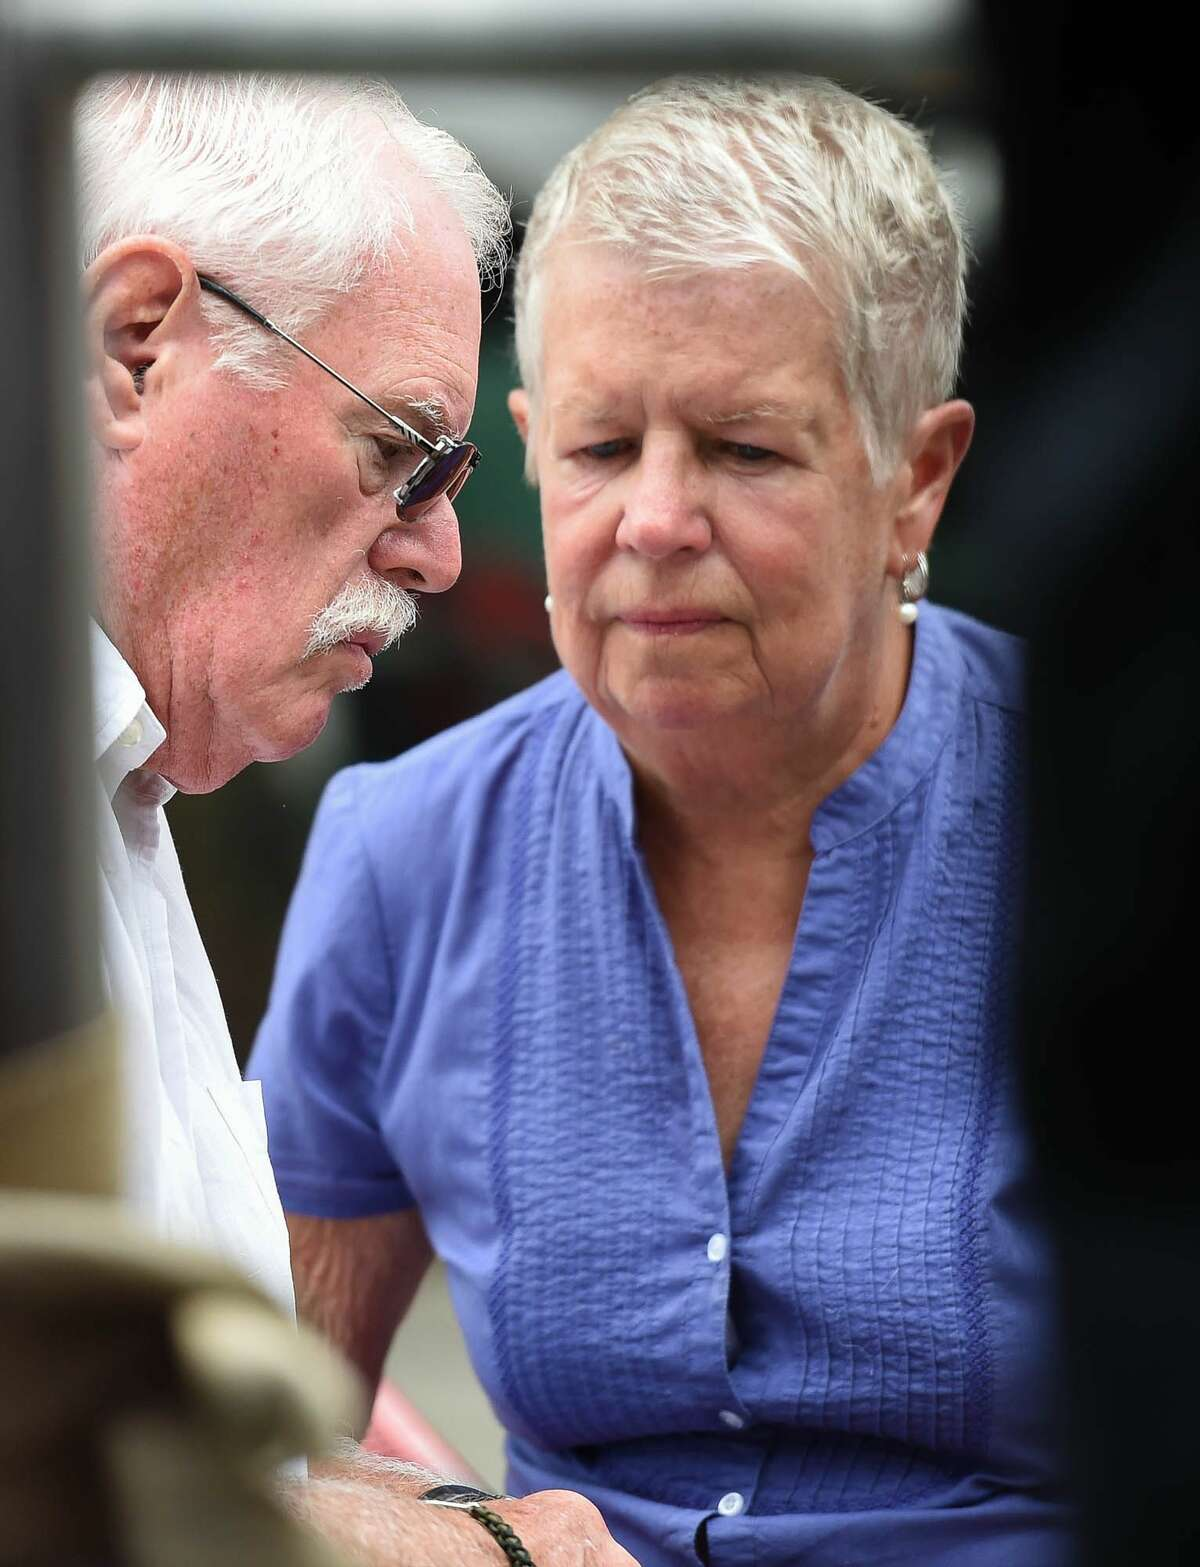 John and Mary Lyon, parents of missing sisters Katherine and Shelia, listen during a news conference on developments in the investigation of the disappearance of 10-year-old Katherine Lyon and 12-year-old Shelia Lyon in 1975. in Wheaton, Md., Wednesday, July 15, 2015.